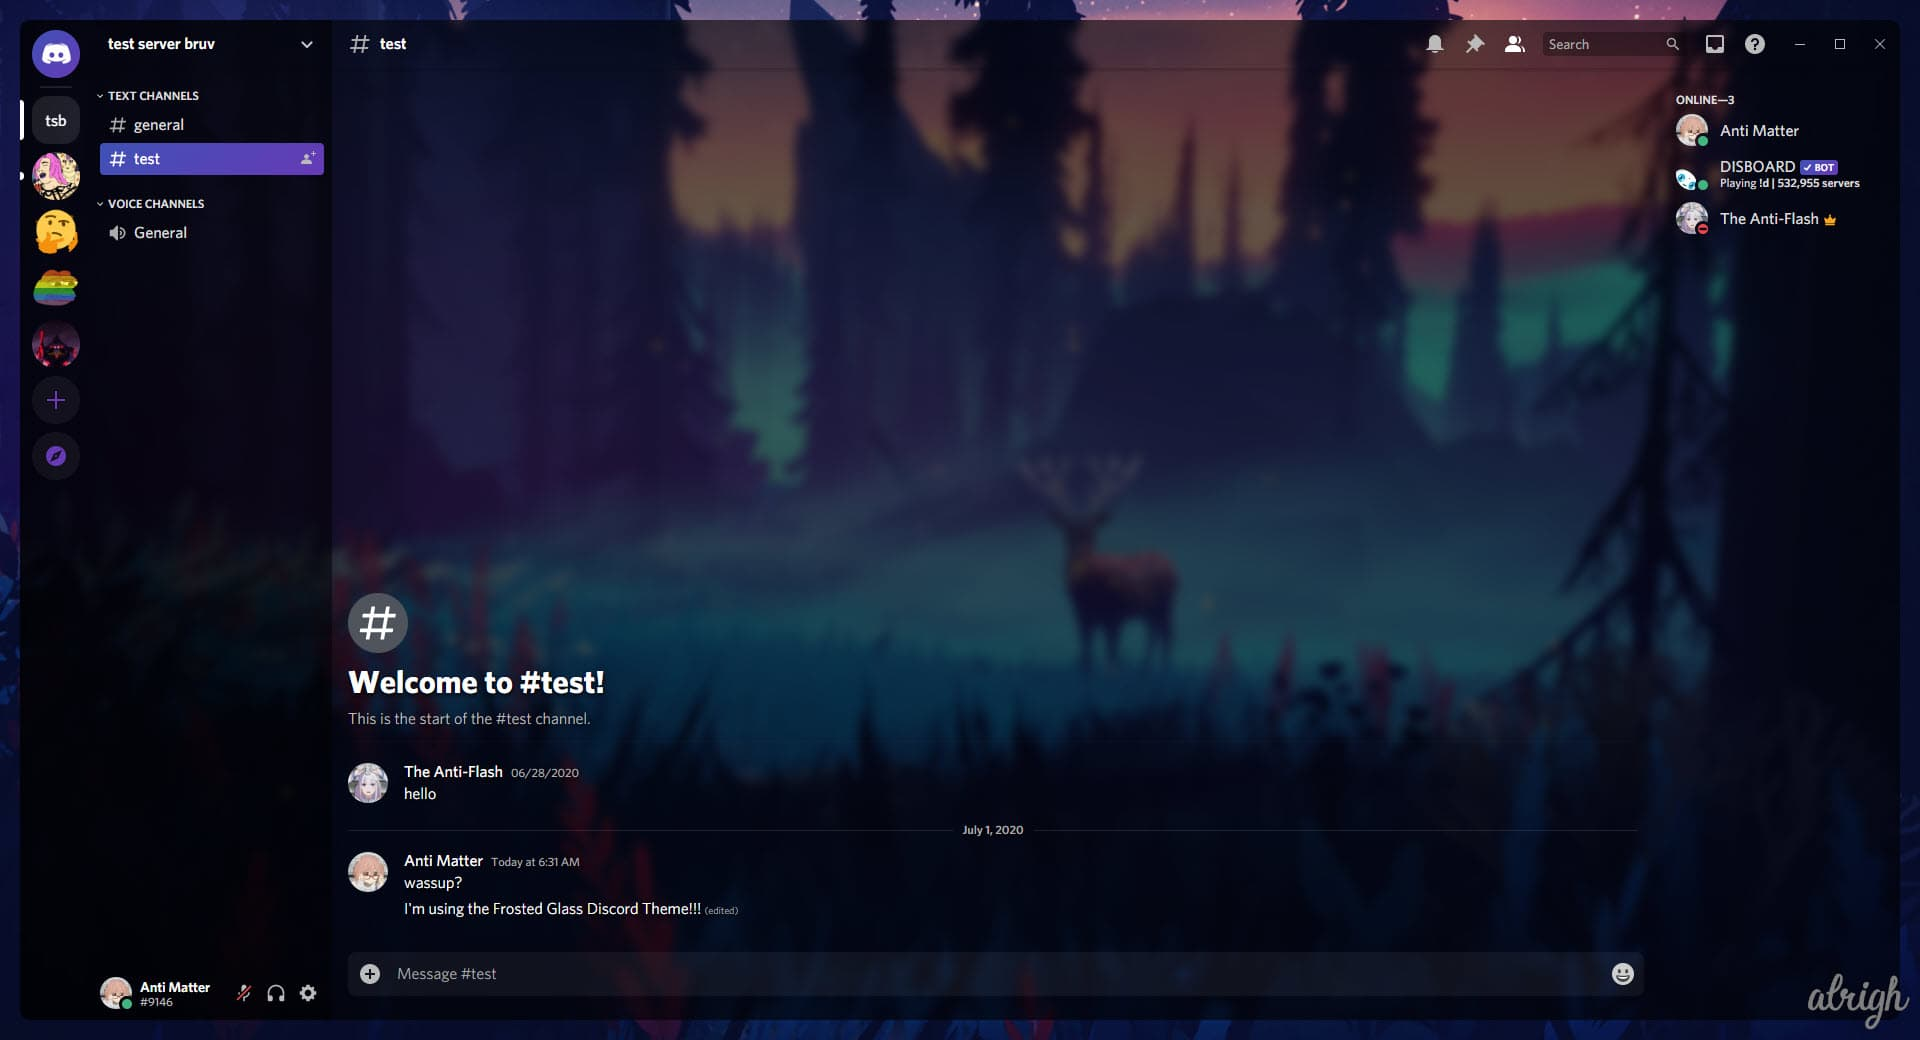 Frosted Glass Discord Theme